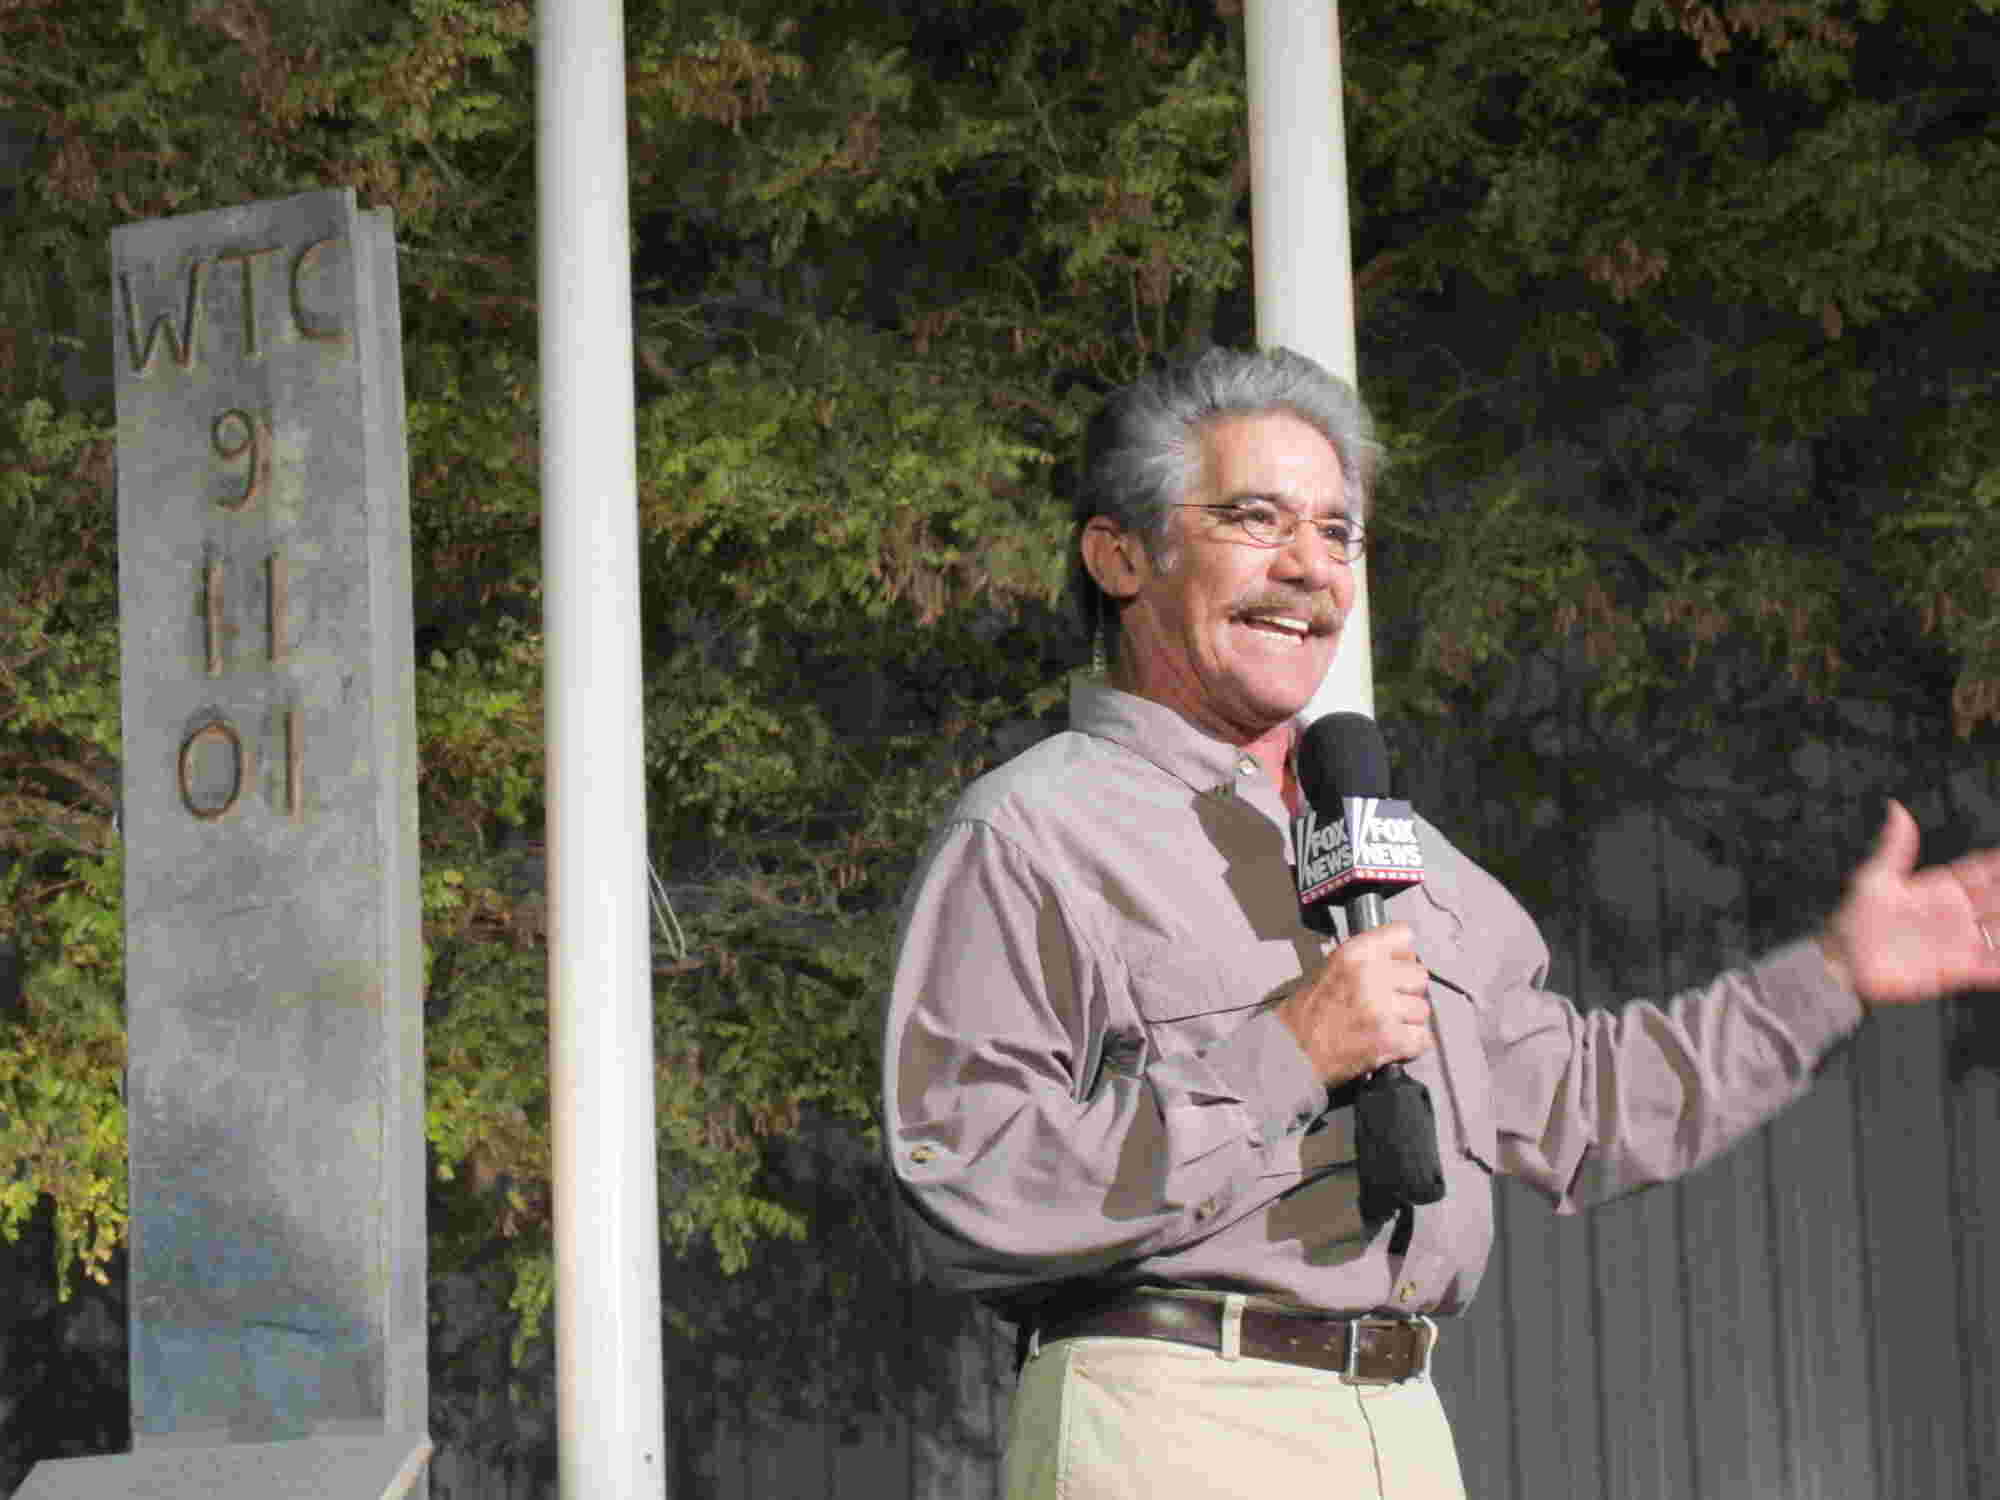 Geraldo speaks in from of a monument memorializing 09/11